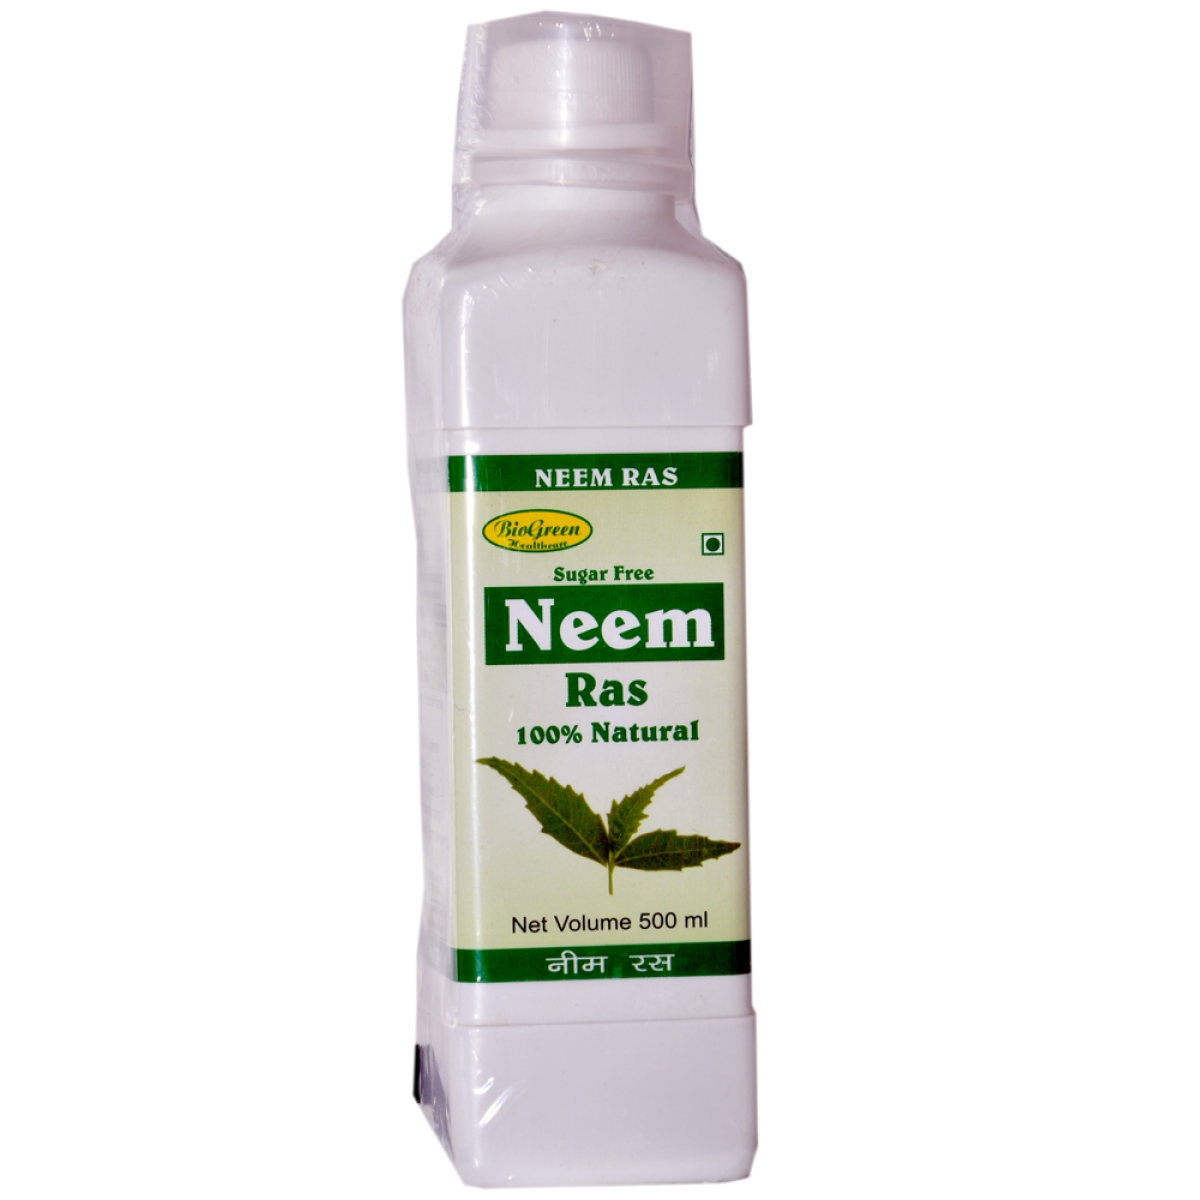 Neem Ras In Dibrugarh